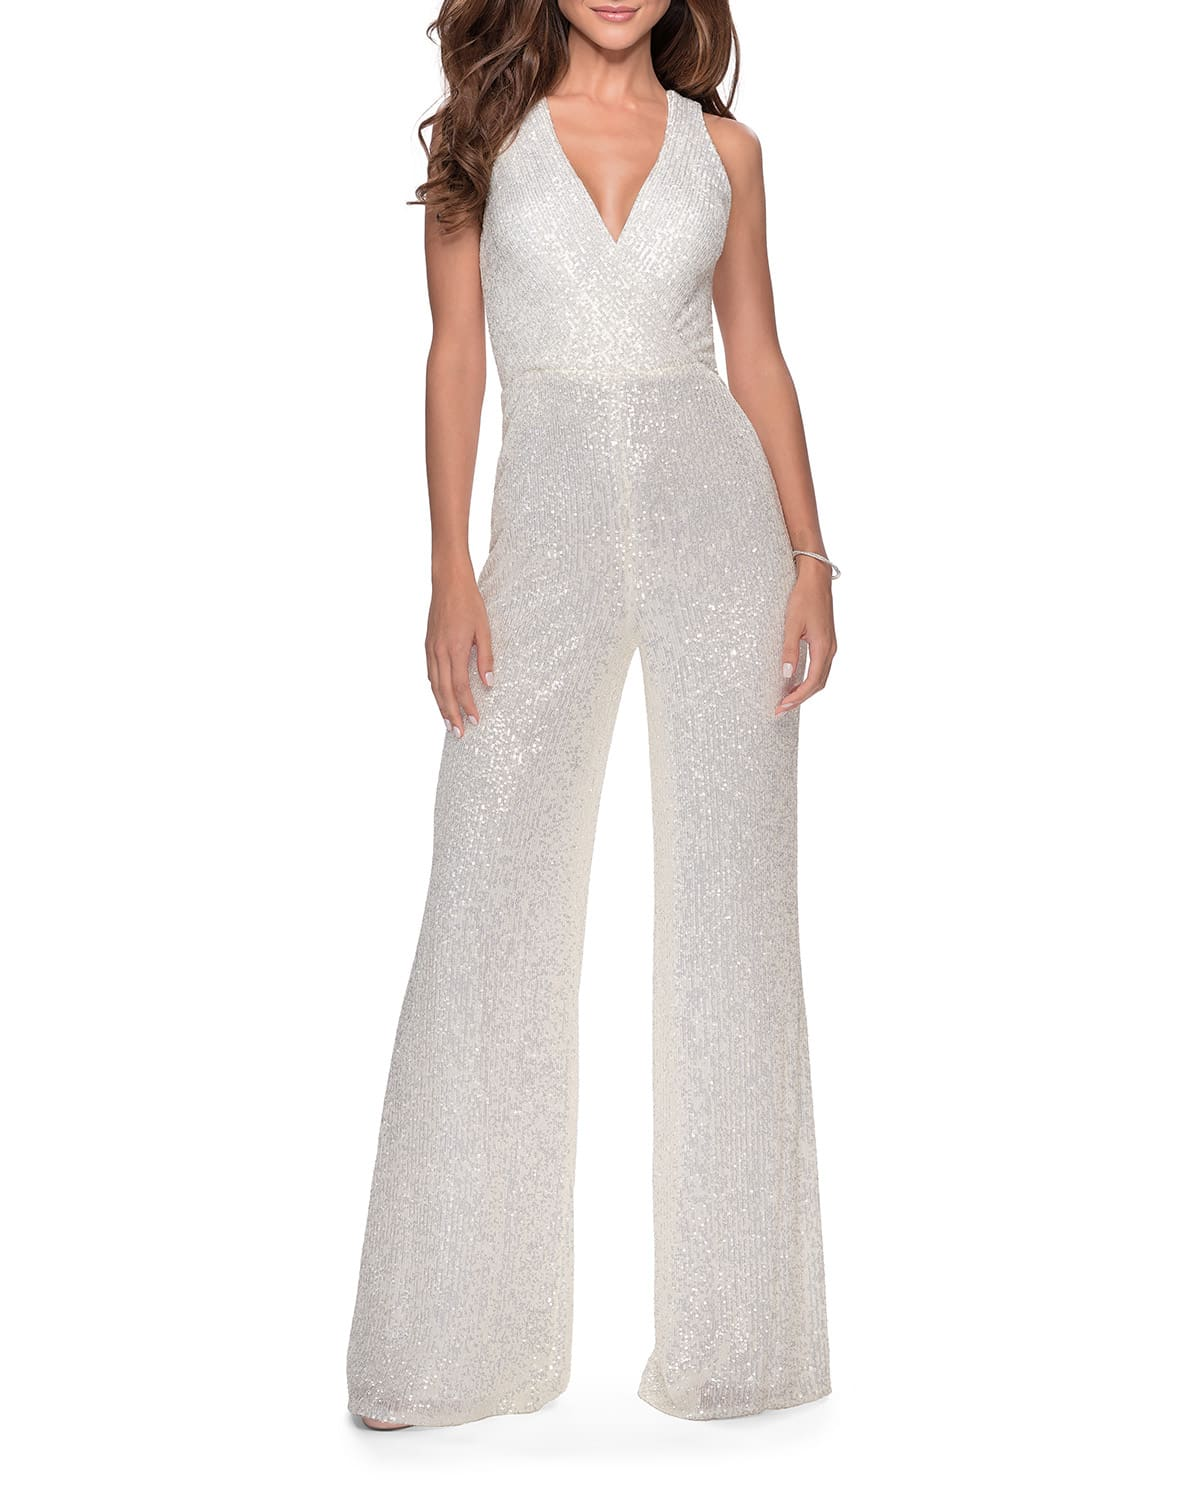 Sequin Pantsuit with Thick Cross-Back Straps